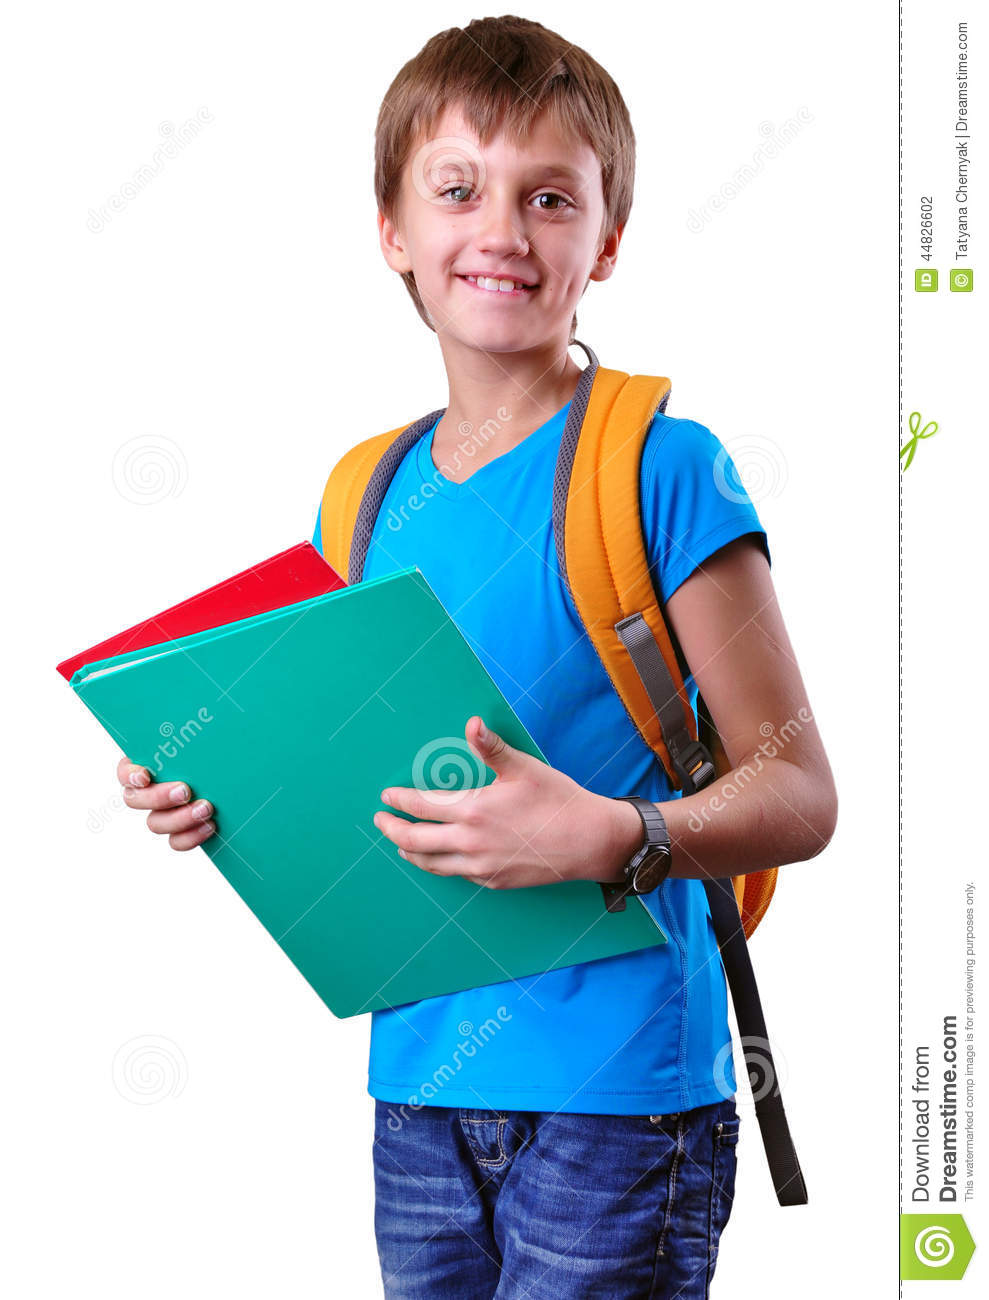 Zapatillas Reebok Royal  plete Low Hombre Azulino Y Blanco M41394 likewise Stock Photo School Kid Holding Soccer Ball further Camiseta Manga Corta Camiseta Estadio Rojo Blanco Mc 100146 besides Stock Photo School Supplies Around A Backpack further Ciudad Vaga2. on mochila blanco